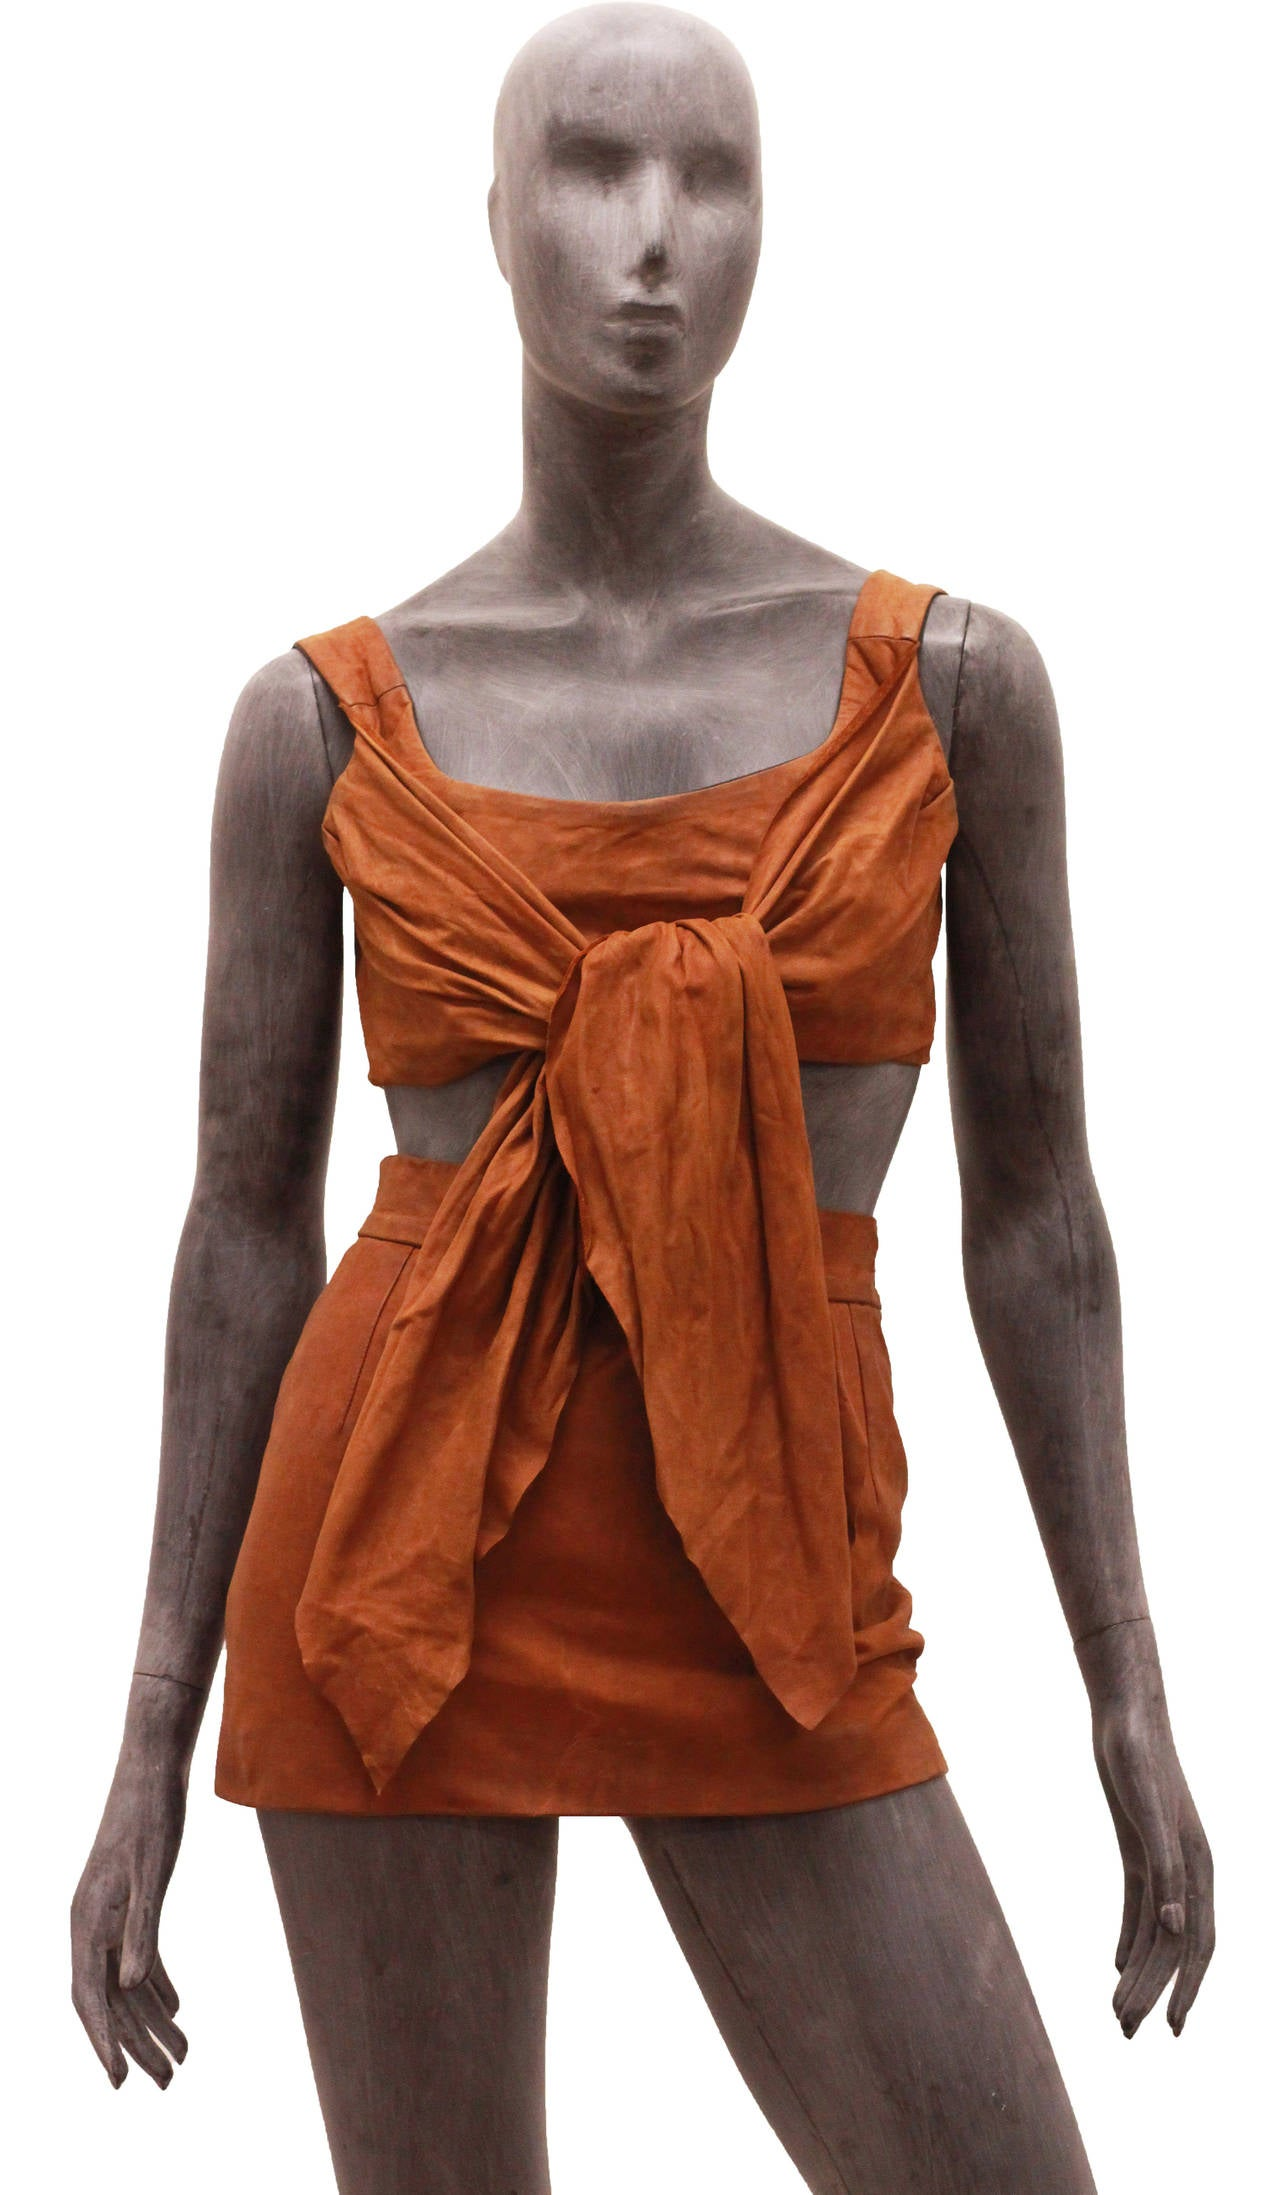 1980s Vivienne Westwood Leather Corset and Mini Skirt Ensemble 2